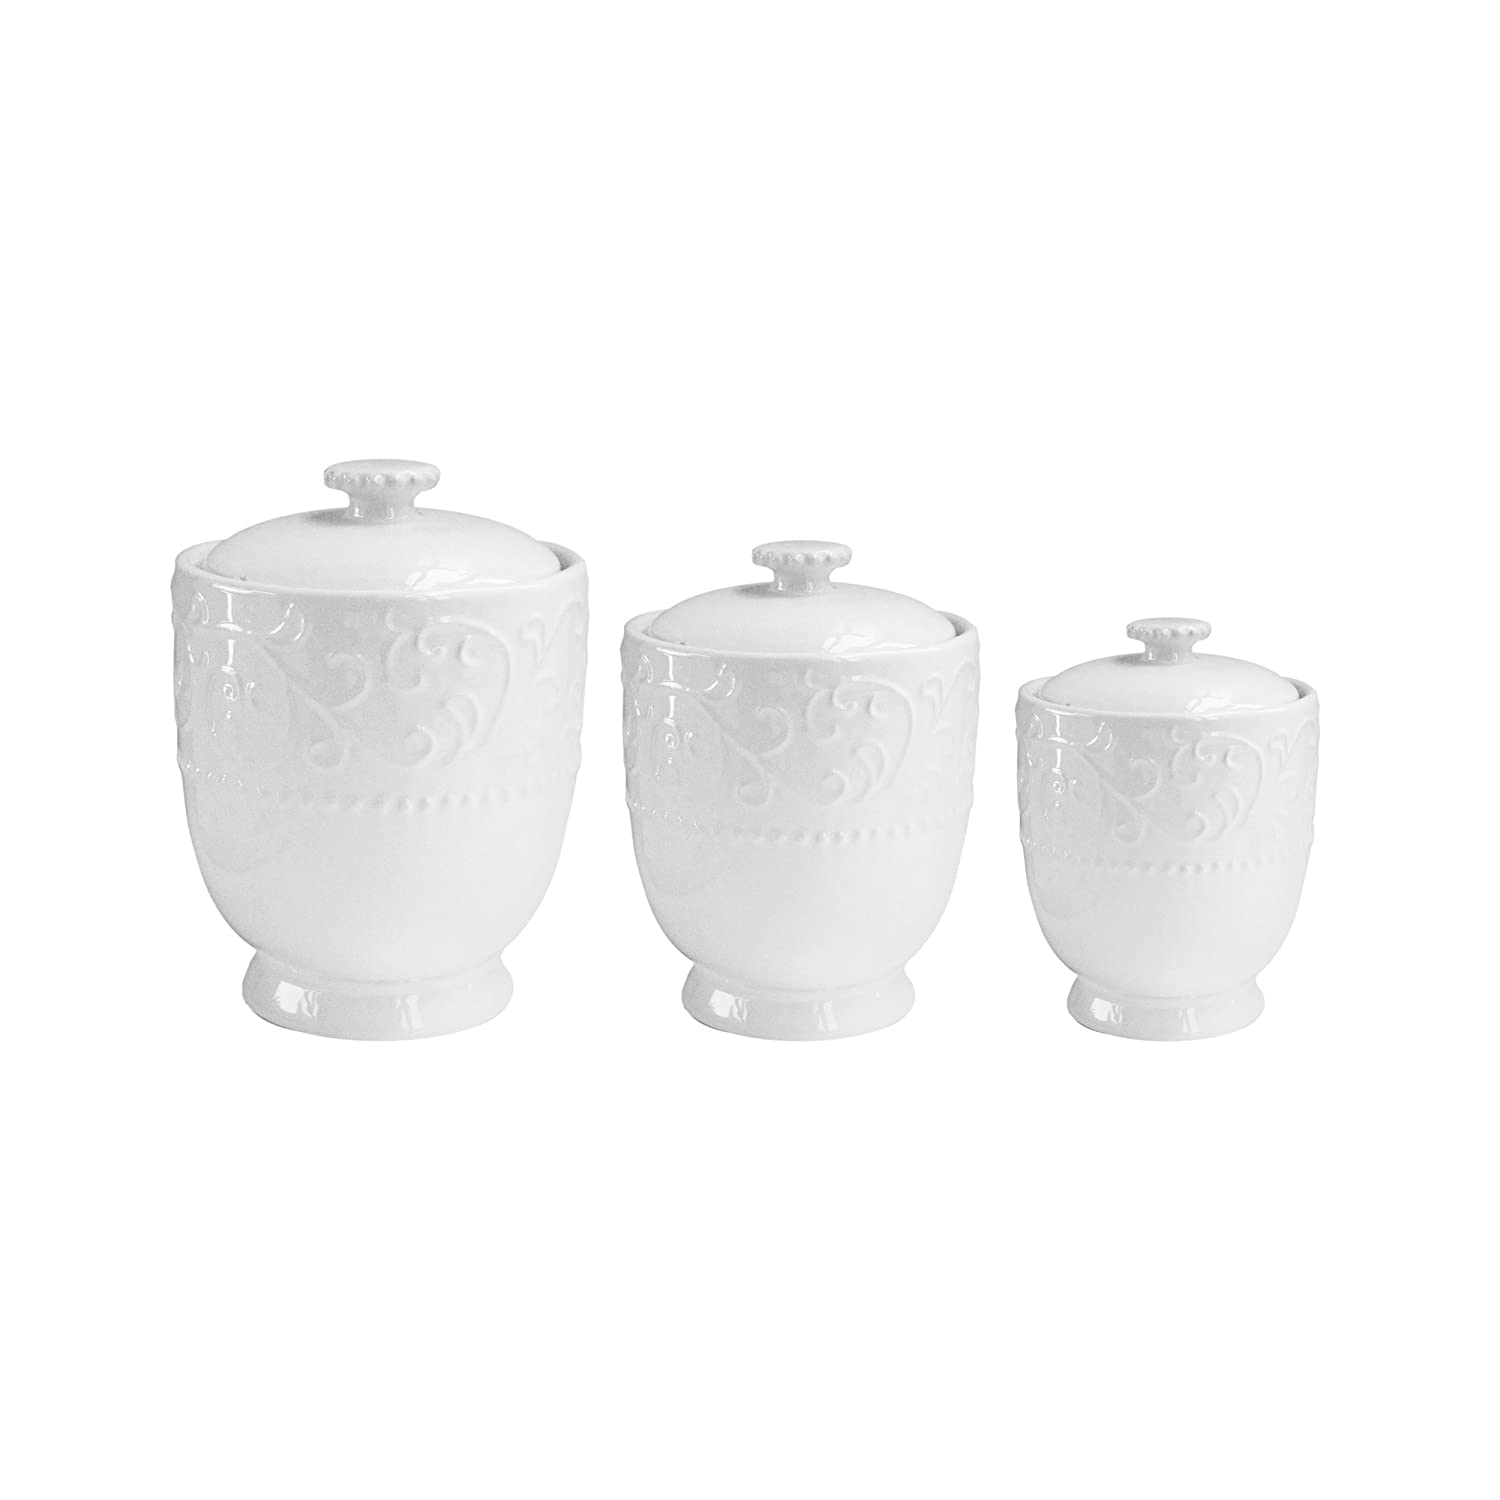 American Atelier 1562460-RB Bianca Scroll Set of 3 Round Canisters, White